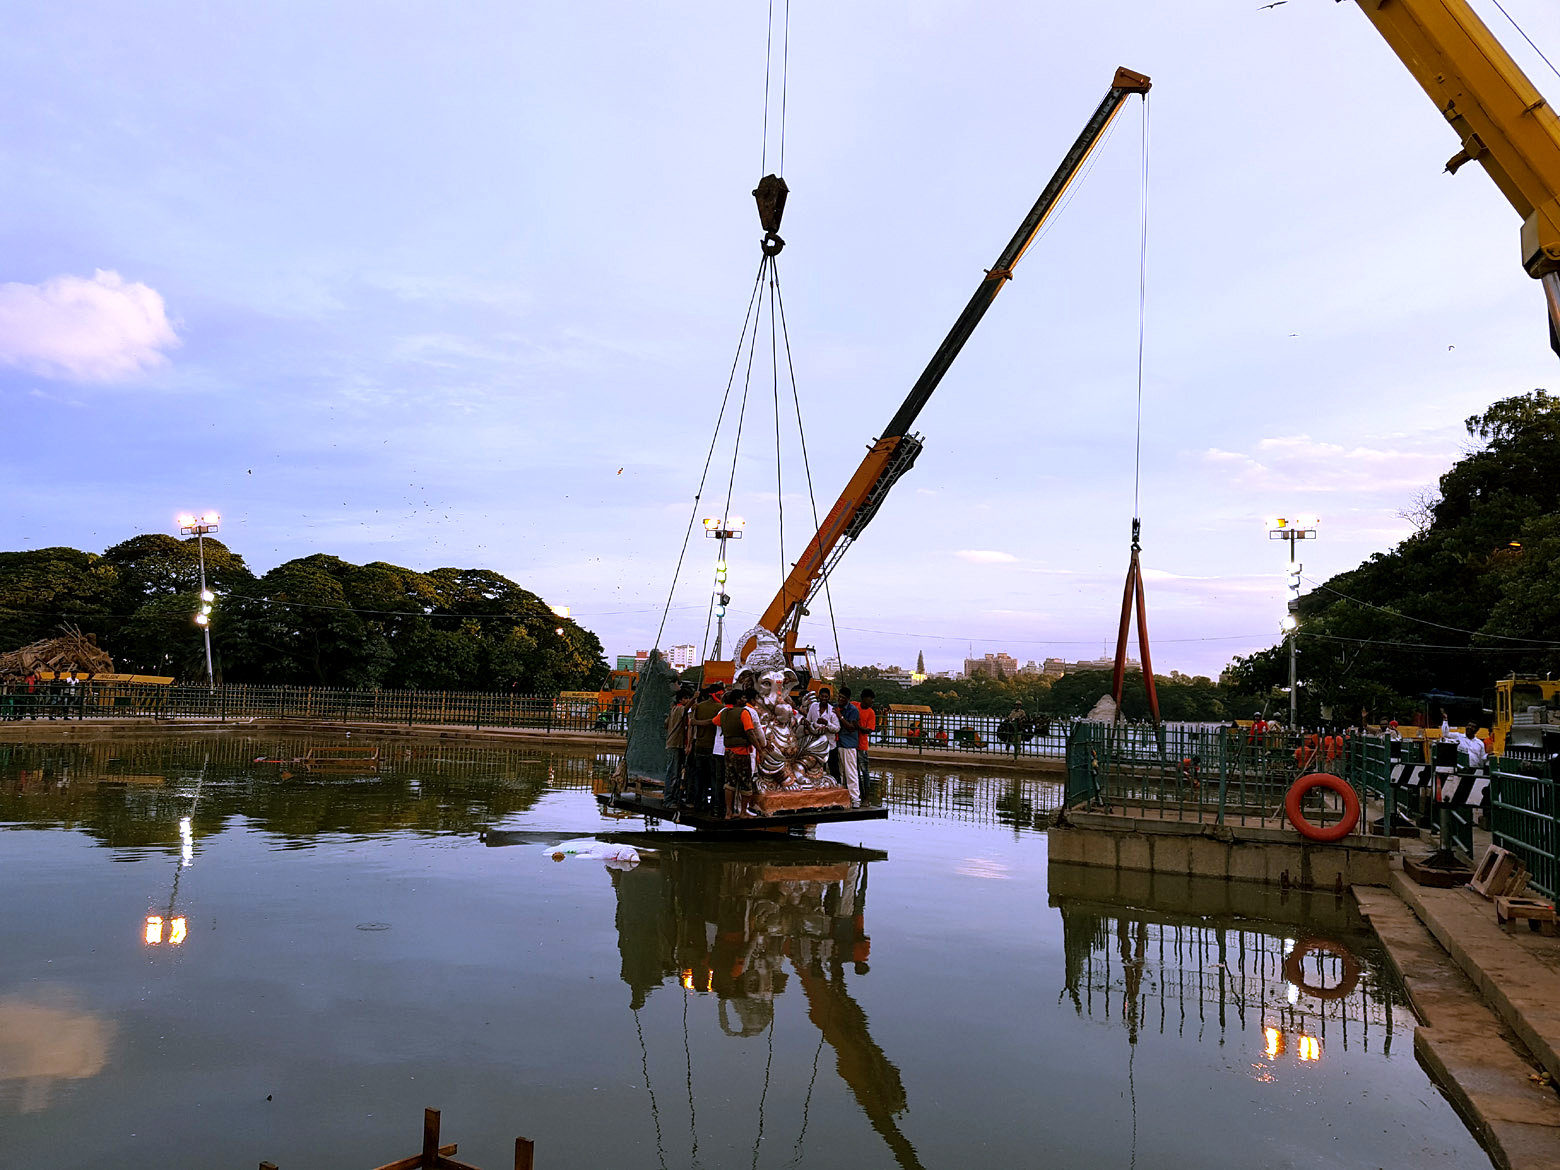 Cranes used for Ganesh Immersion in Lakes